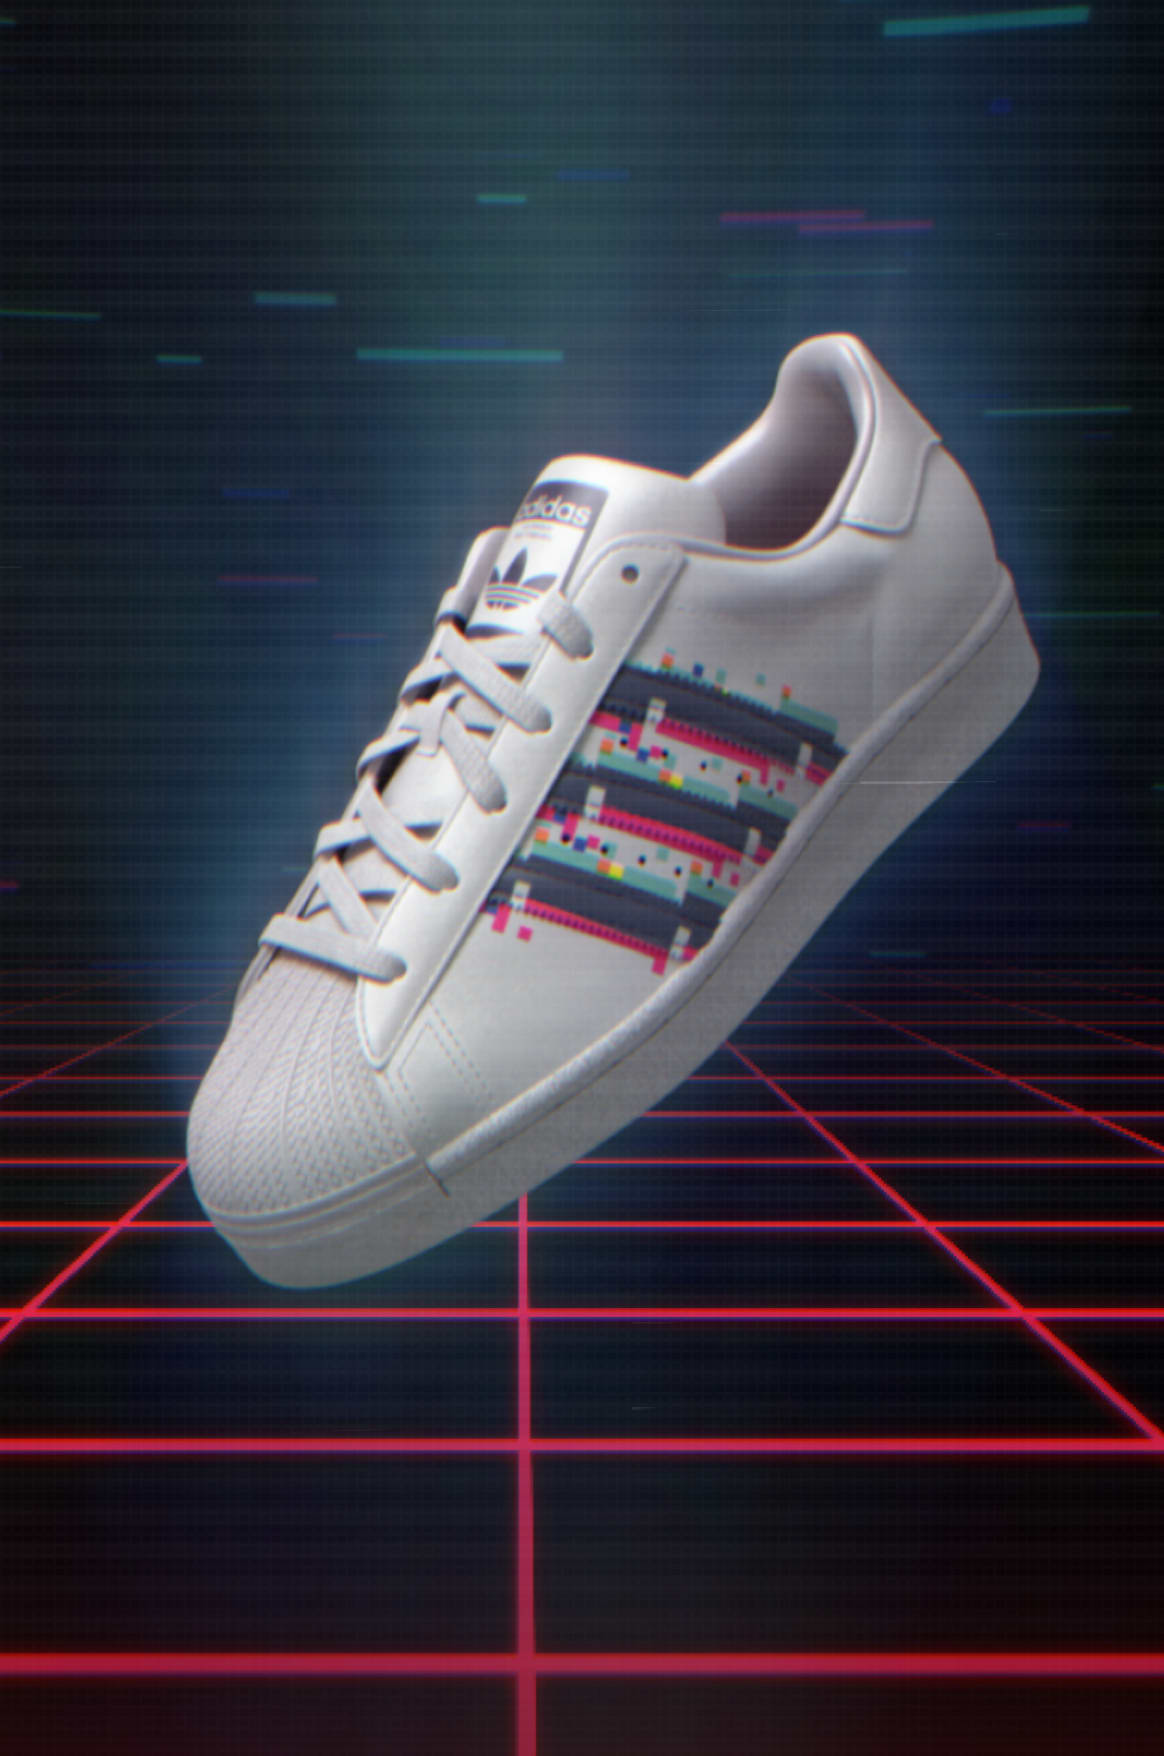 adidas Superstar in video-game setting.